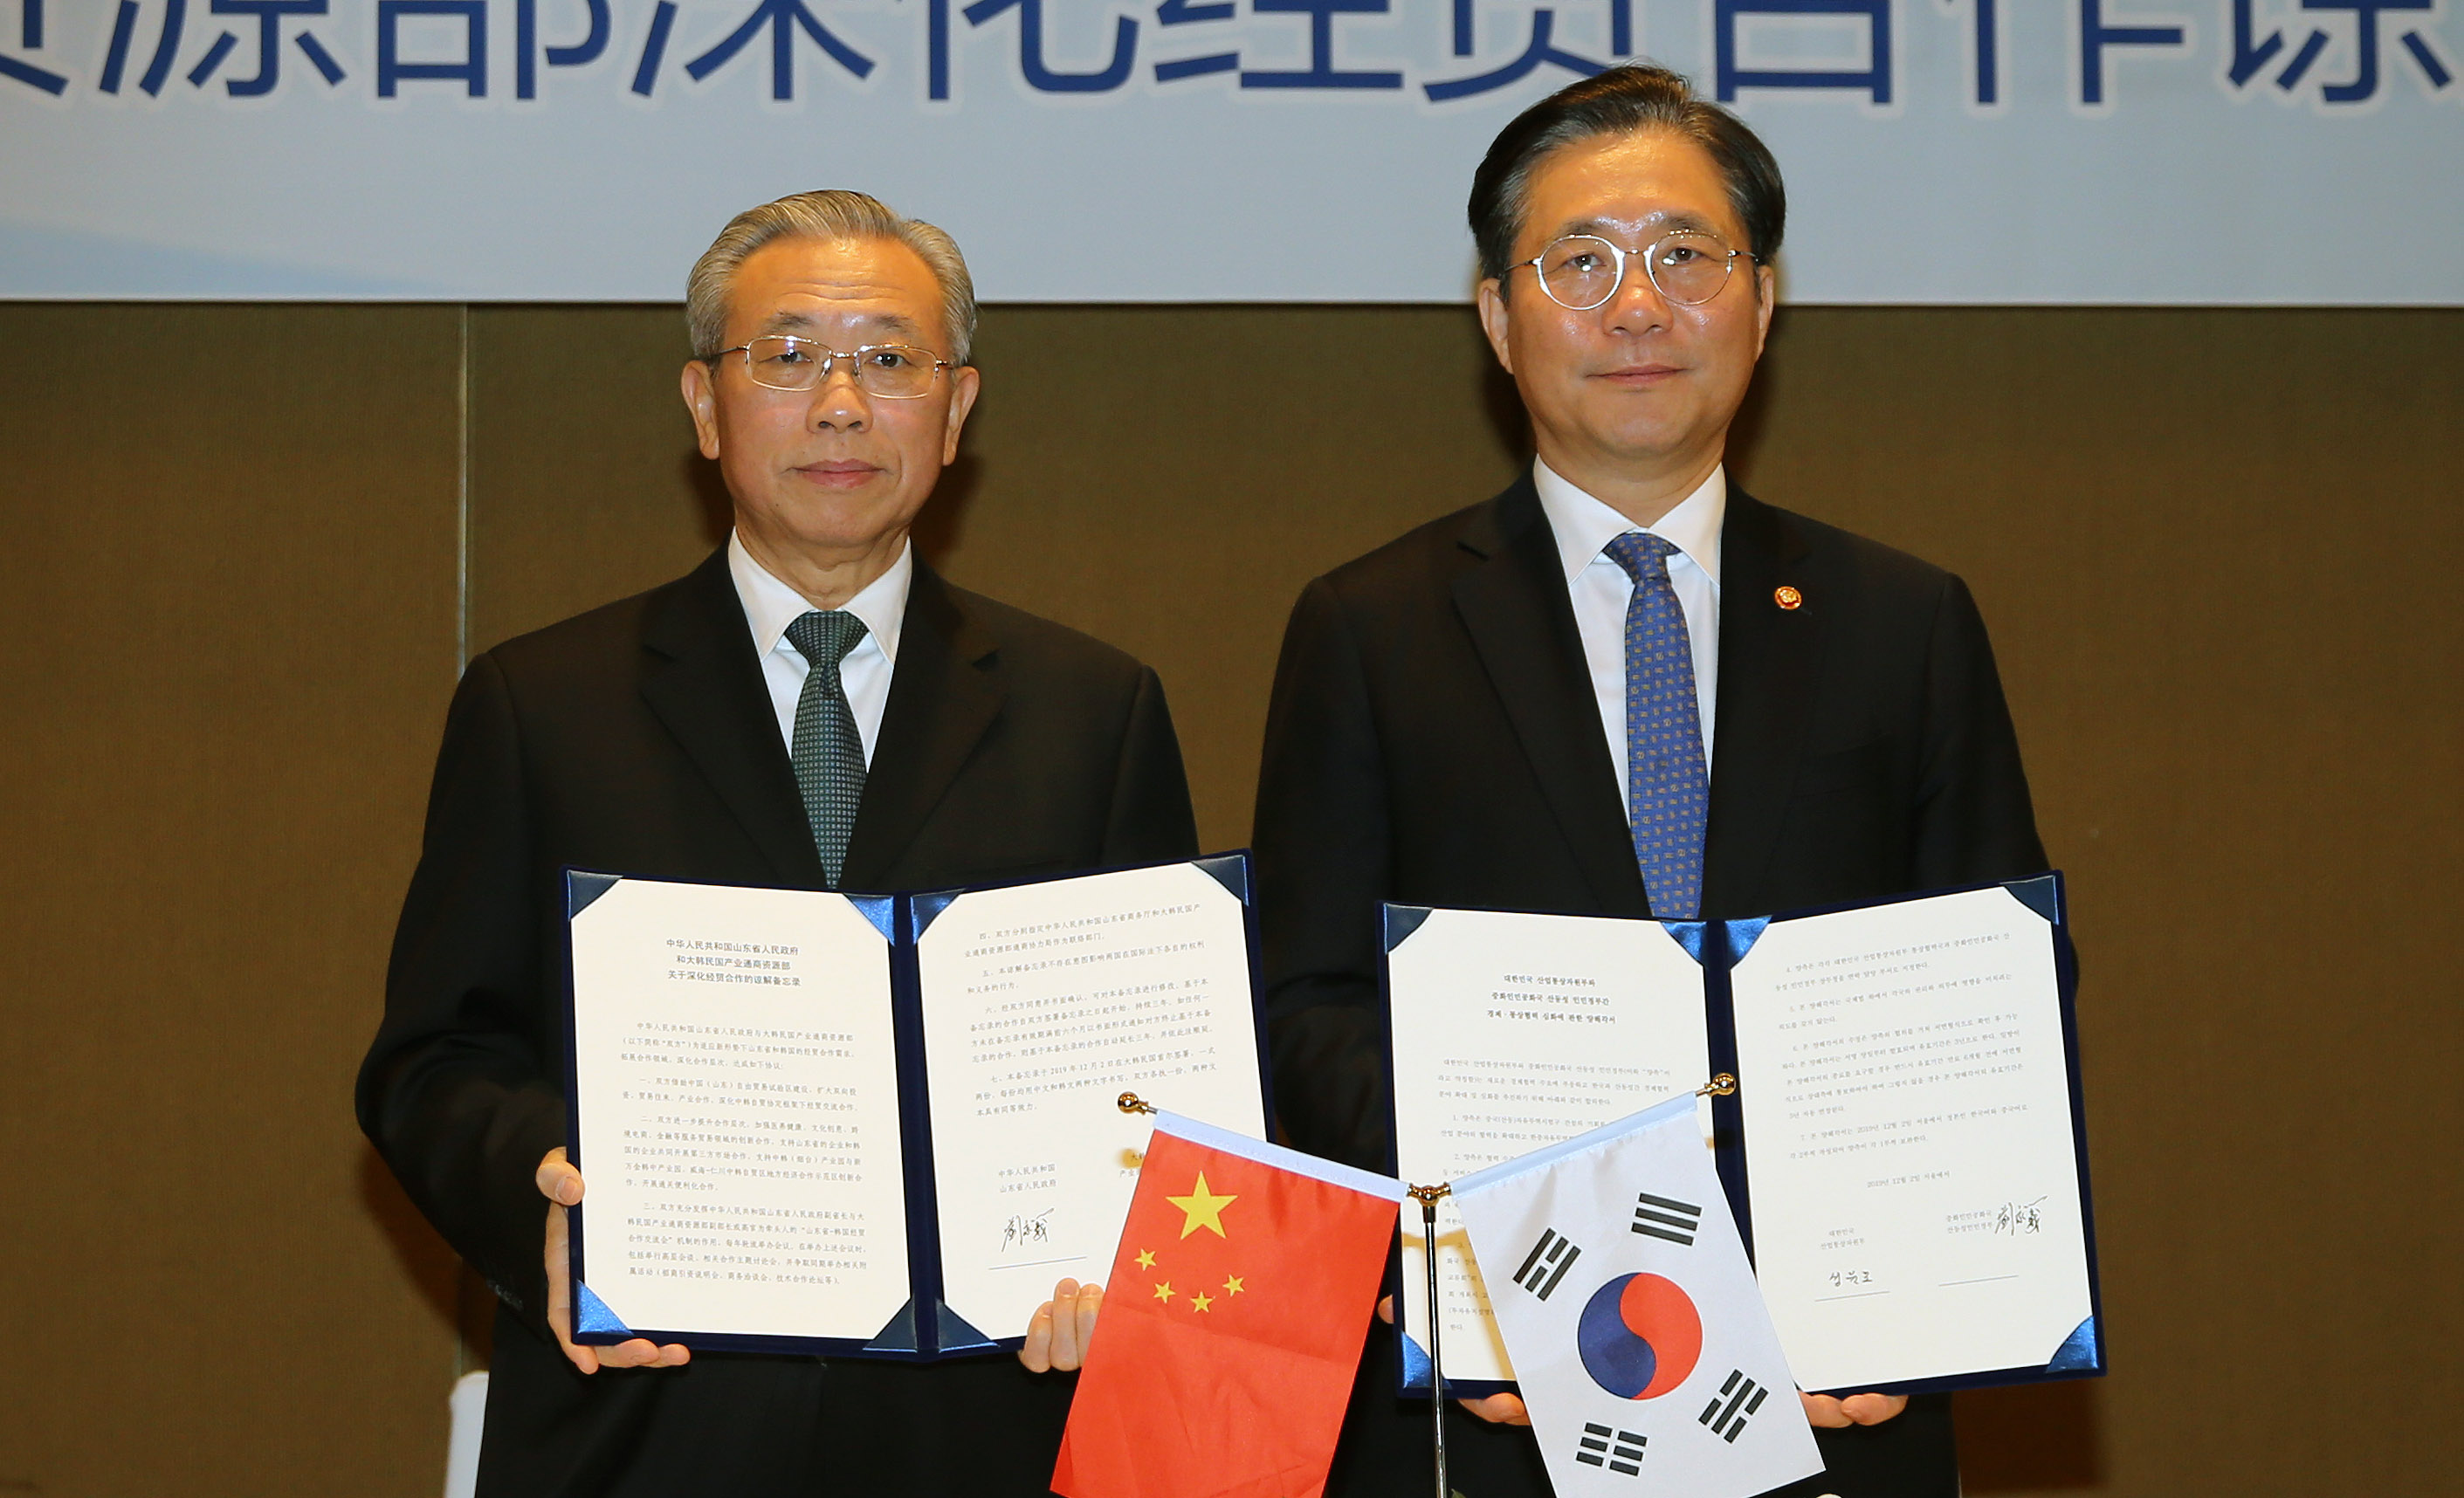 Minister Sung and Party Secretary of China's Shandong Province sign MOU on economic cooperation